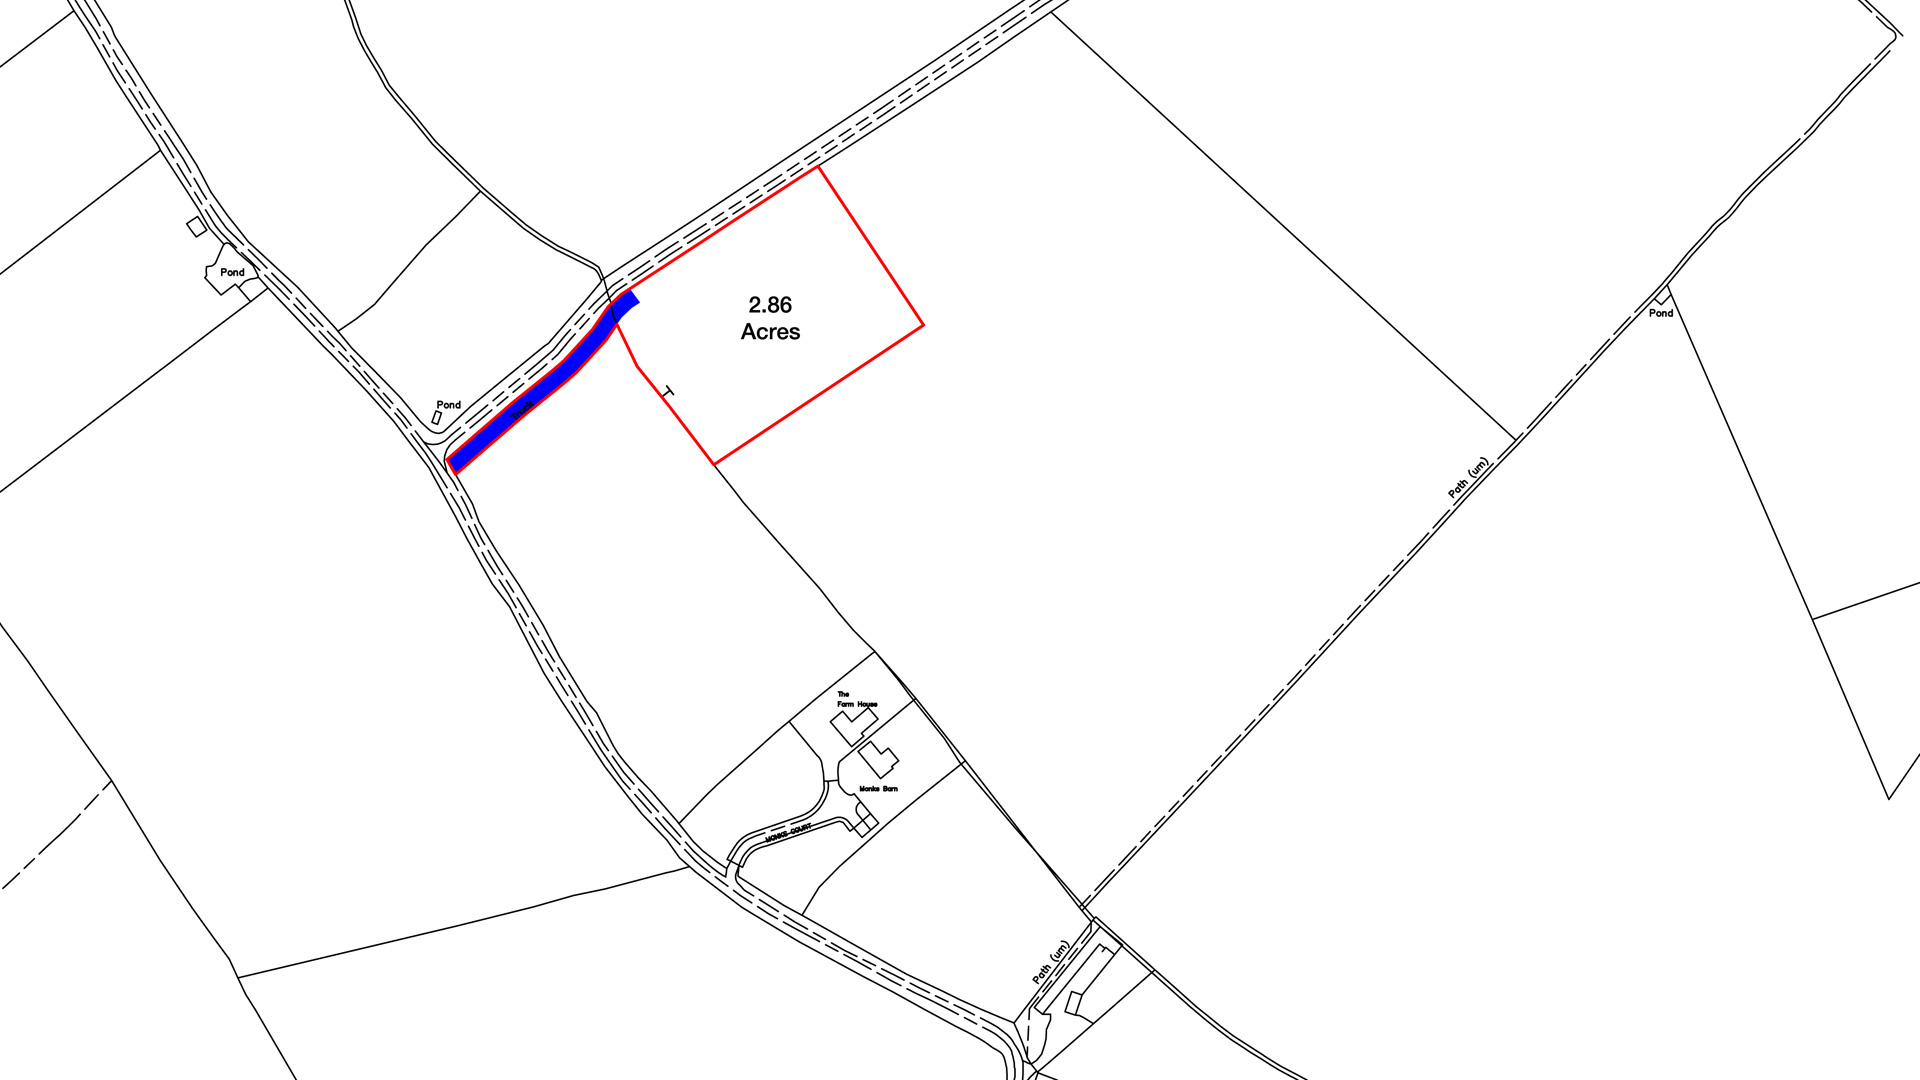 Land for sale in Puttenham, Tring site plan